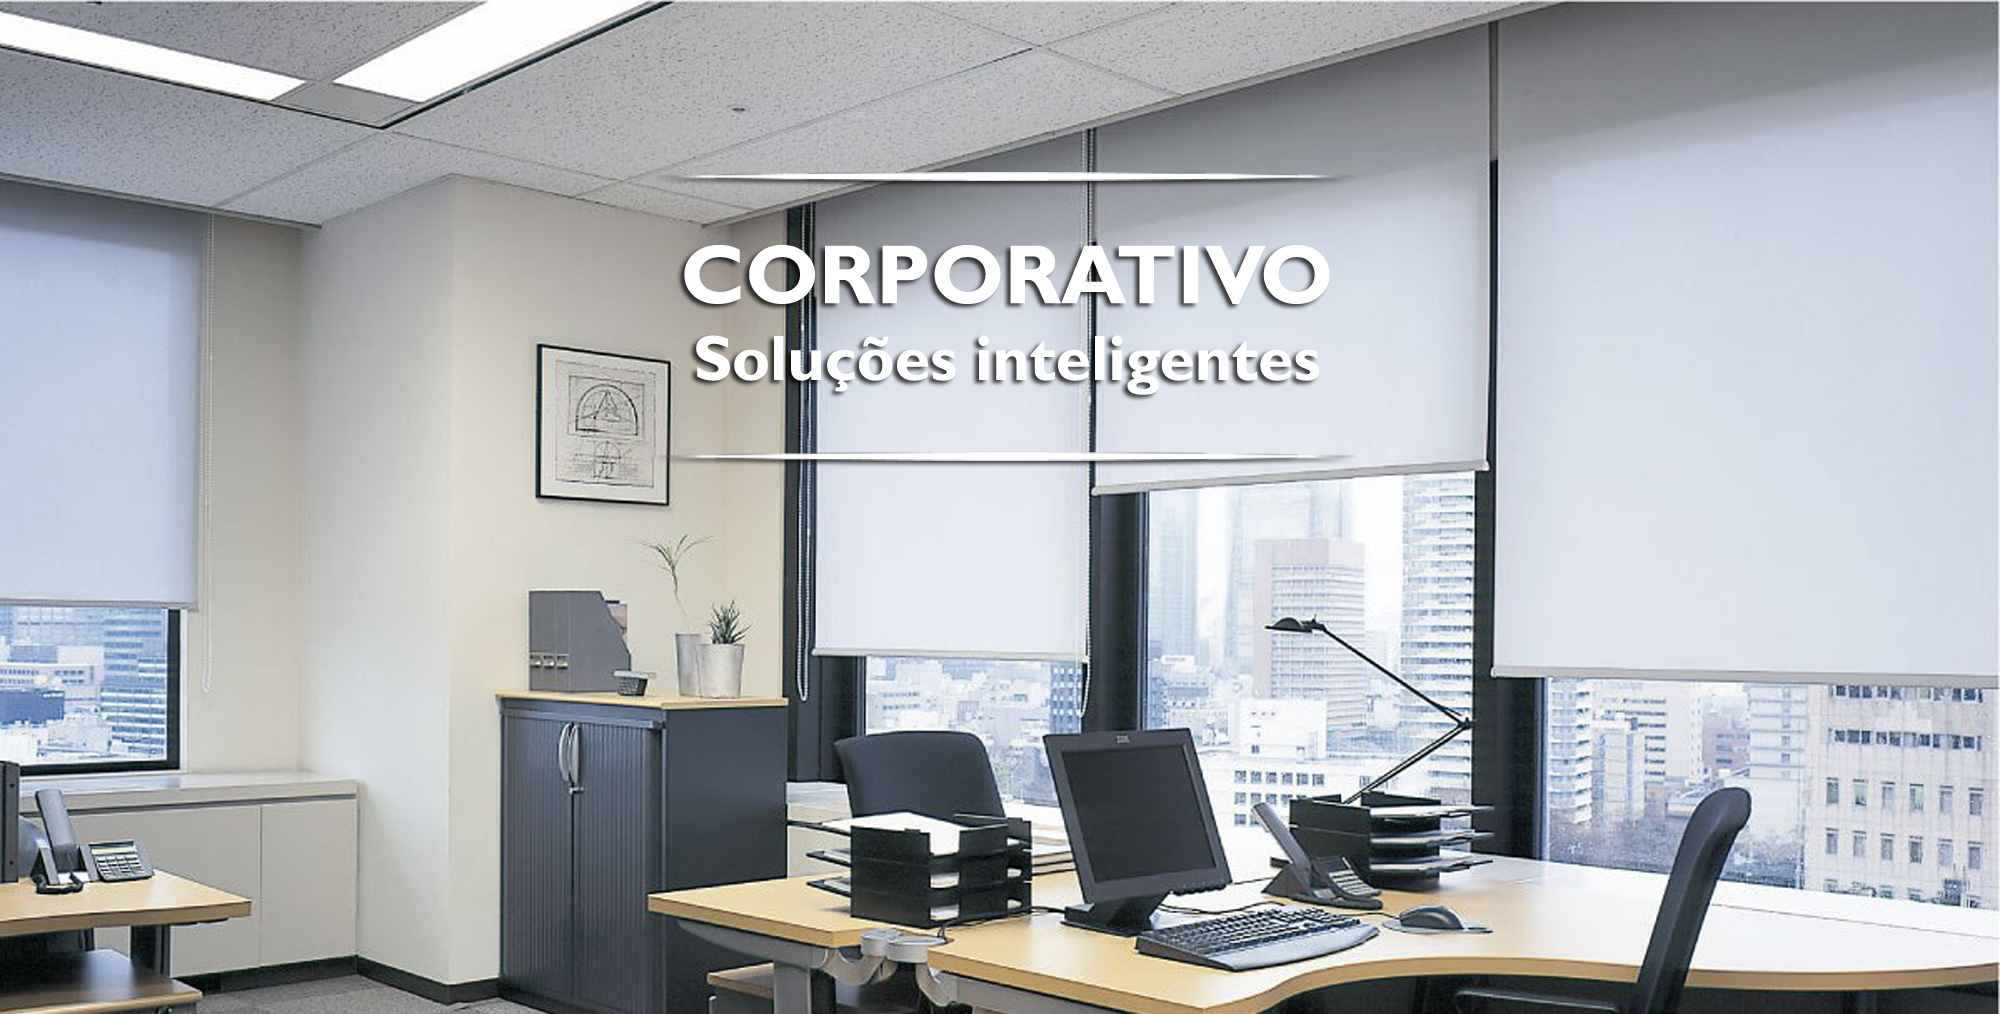 Corporativo - Persianas e Cortinas para empresas